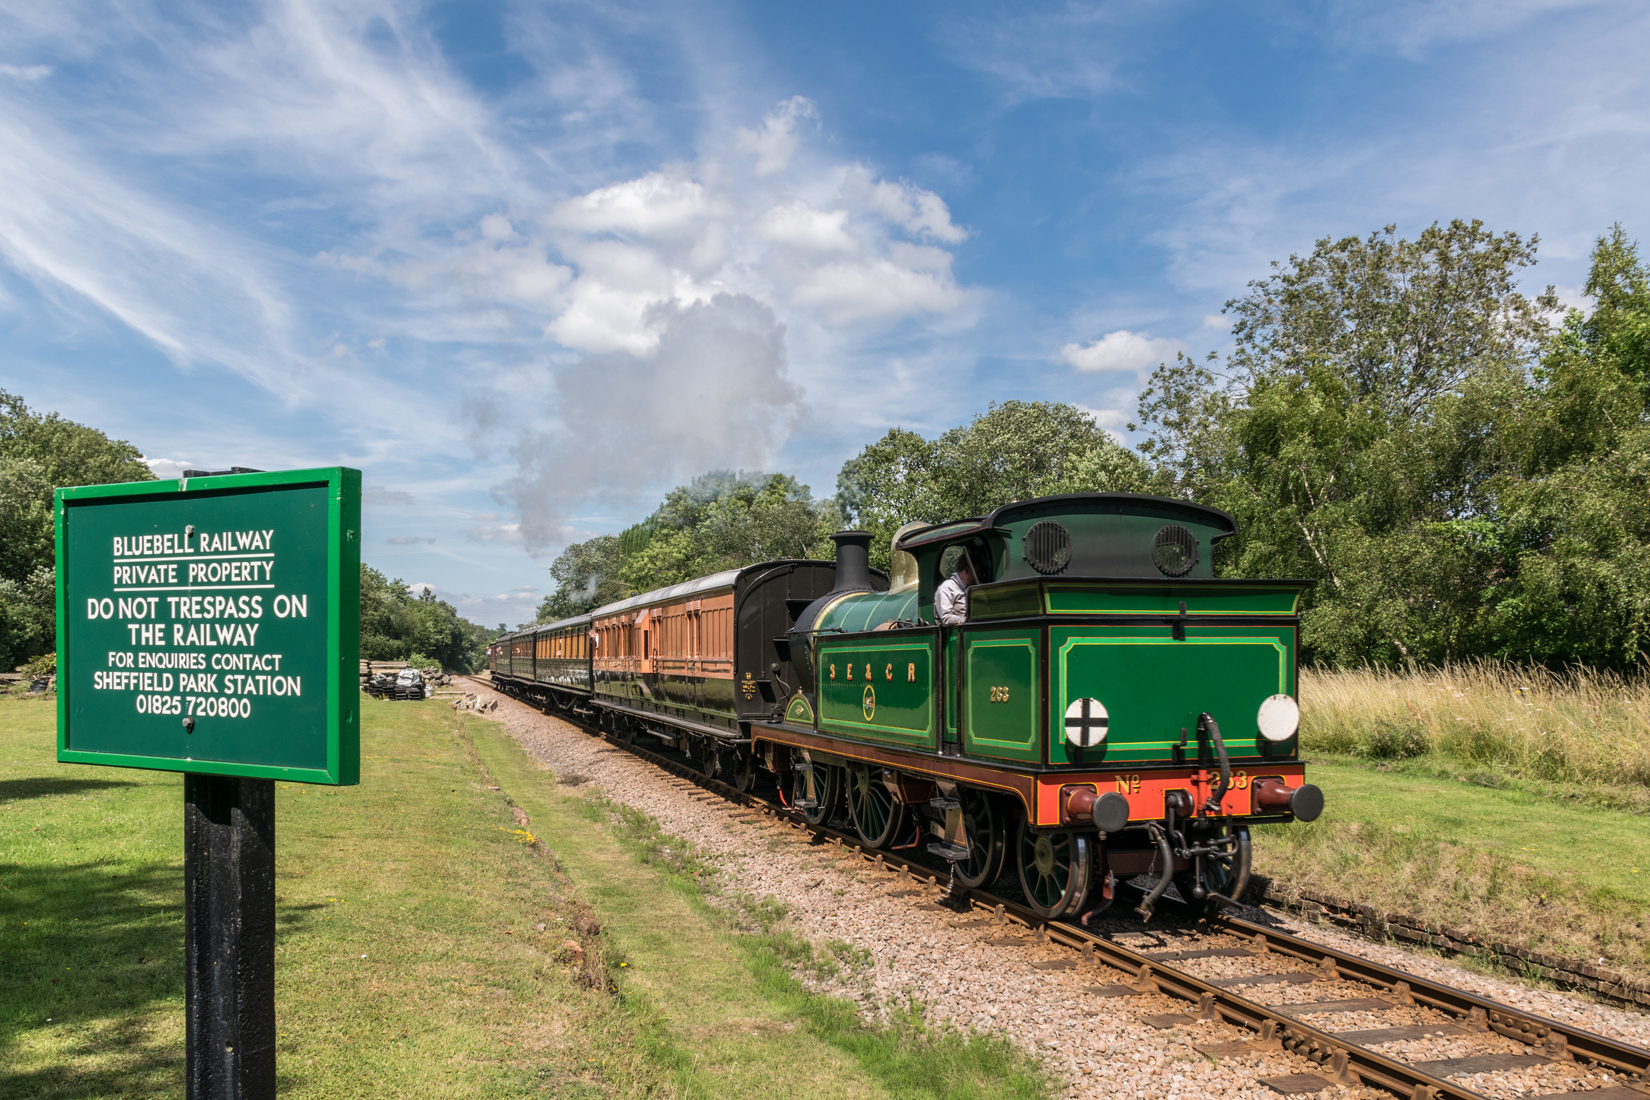 South Eastern & Chatham Railway, H-class 0-4-4T, No.263 heading south past the site of former West Hoathly station